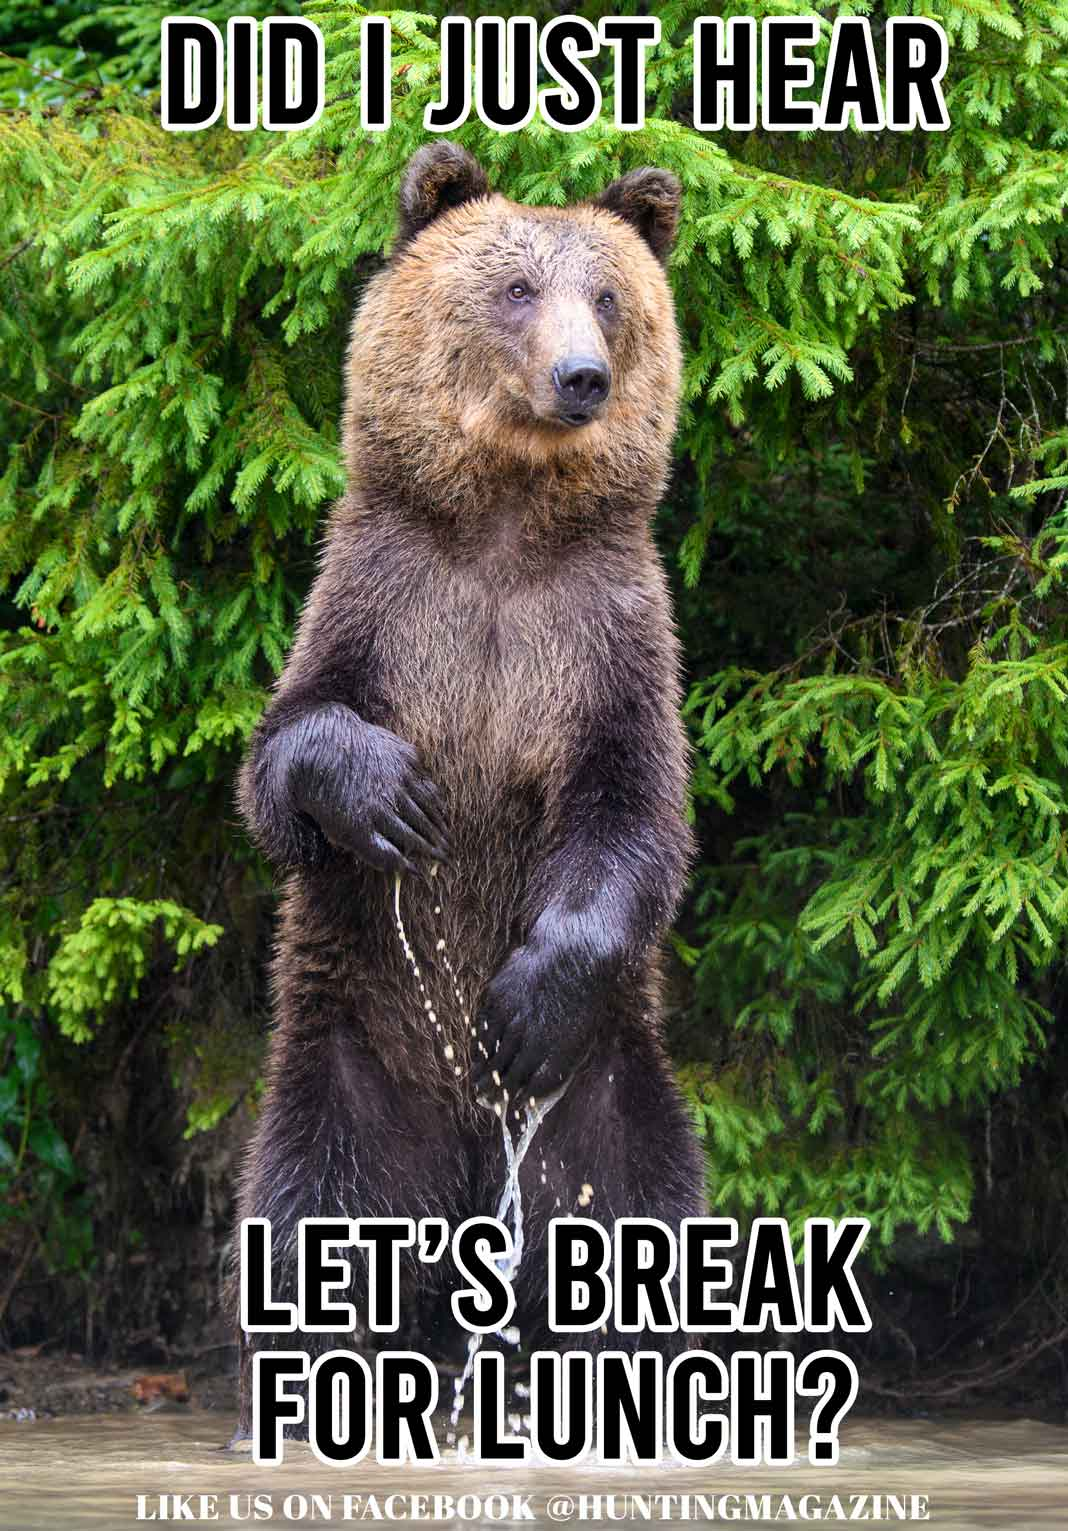 Funny Hunting Meme: Did I just hear lets break for lunch? | Hunting Magazine